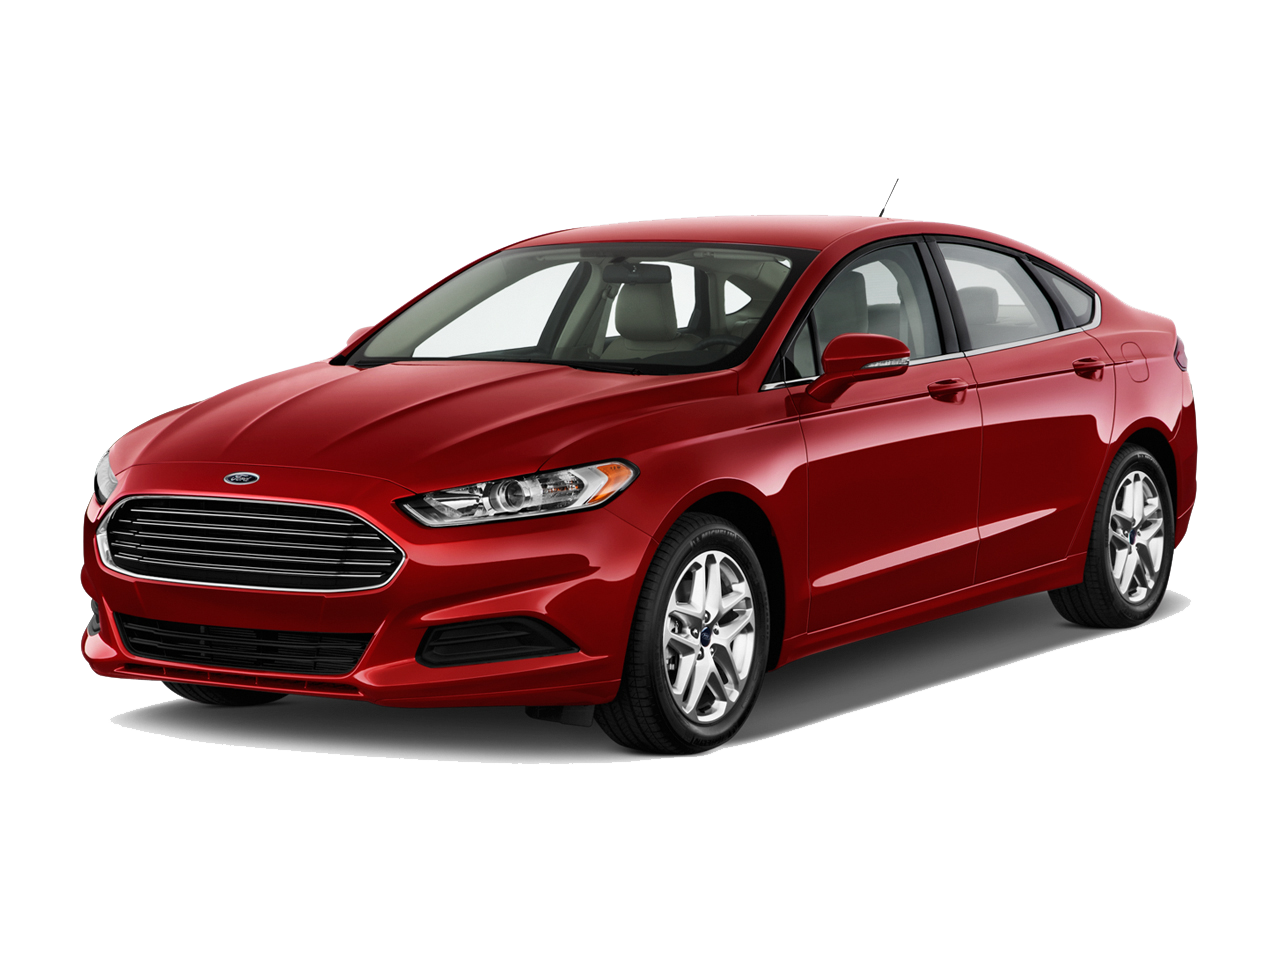 No Money Down Auto Loans In Rosedale Maryland Ford Fusion New Cars Car